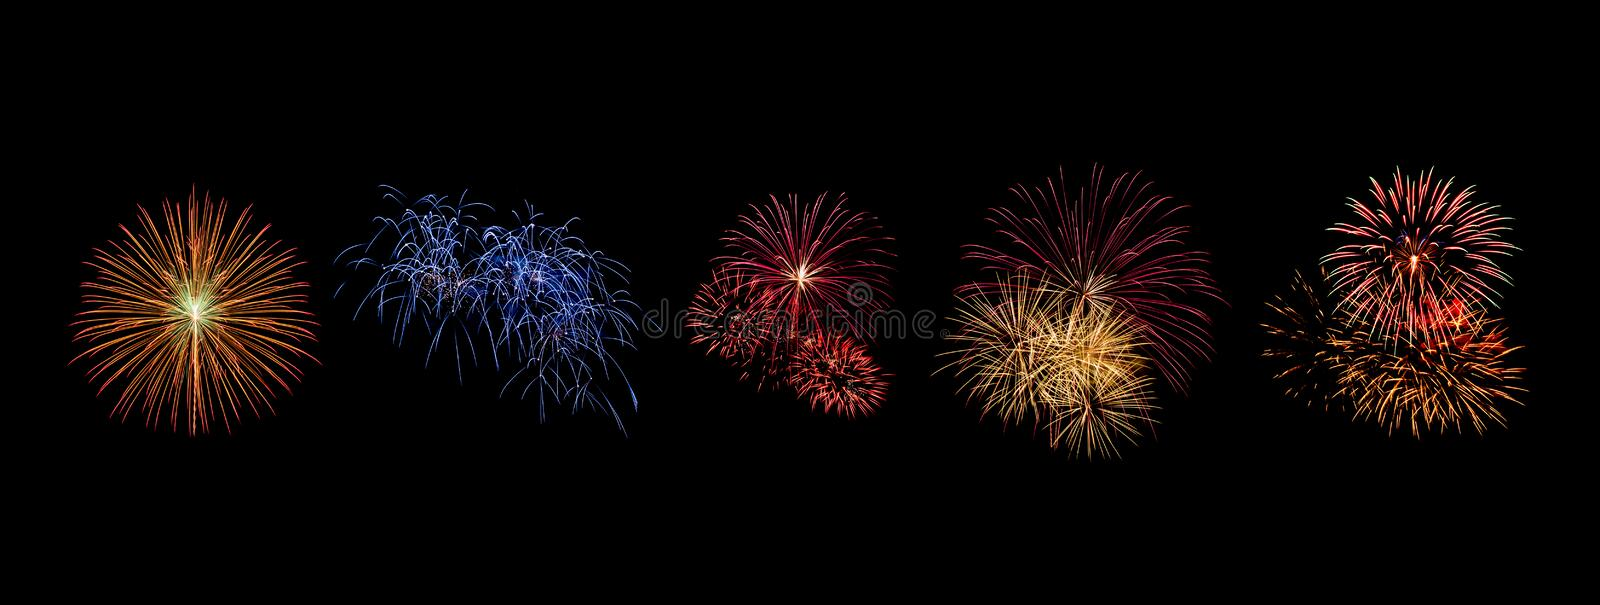 Color fireworks set light up on sky with dazzling display on black background stock photography